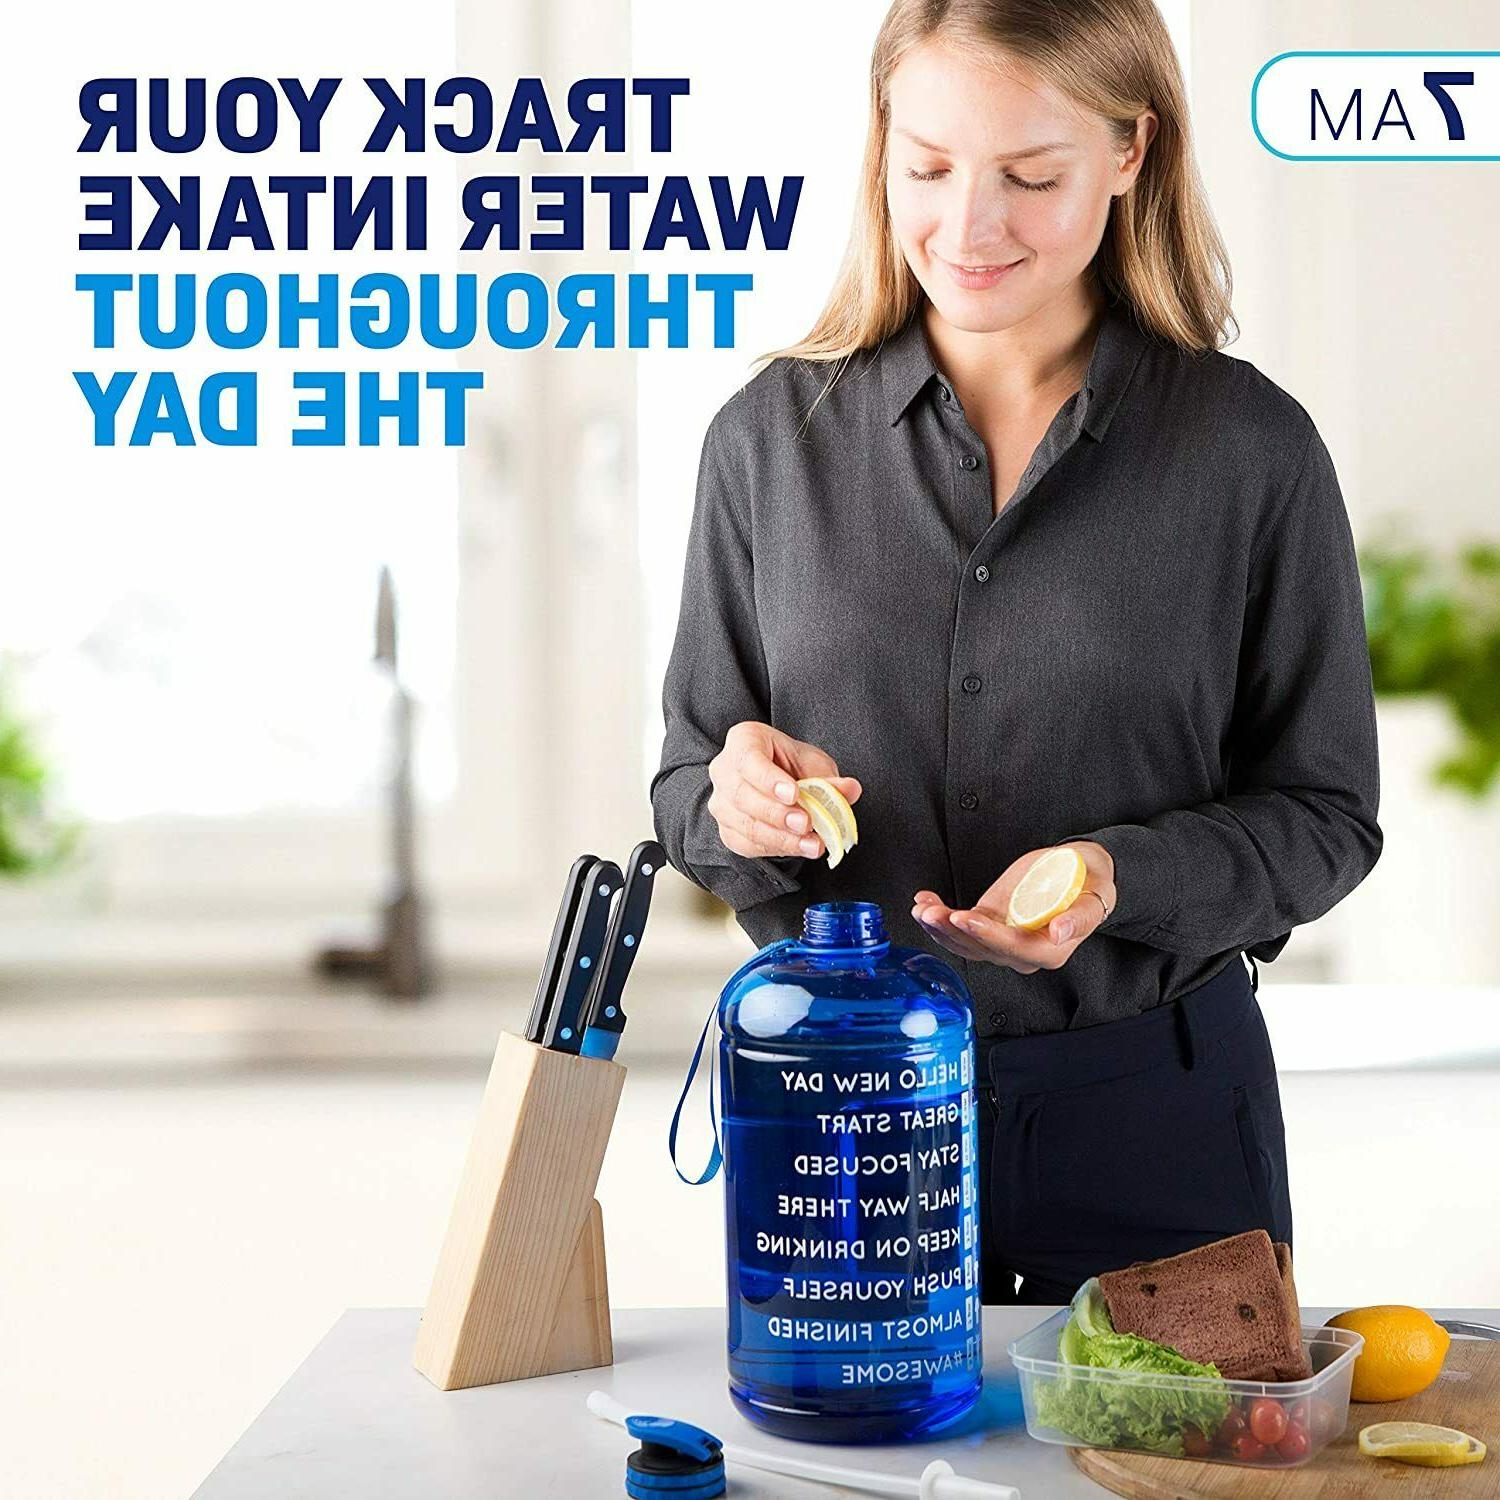 Water 1 with Time Marker Straw Increase Daily Water